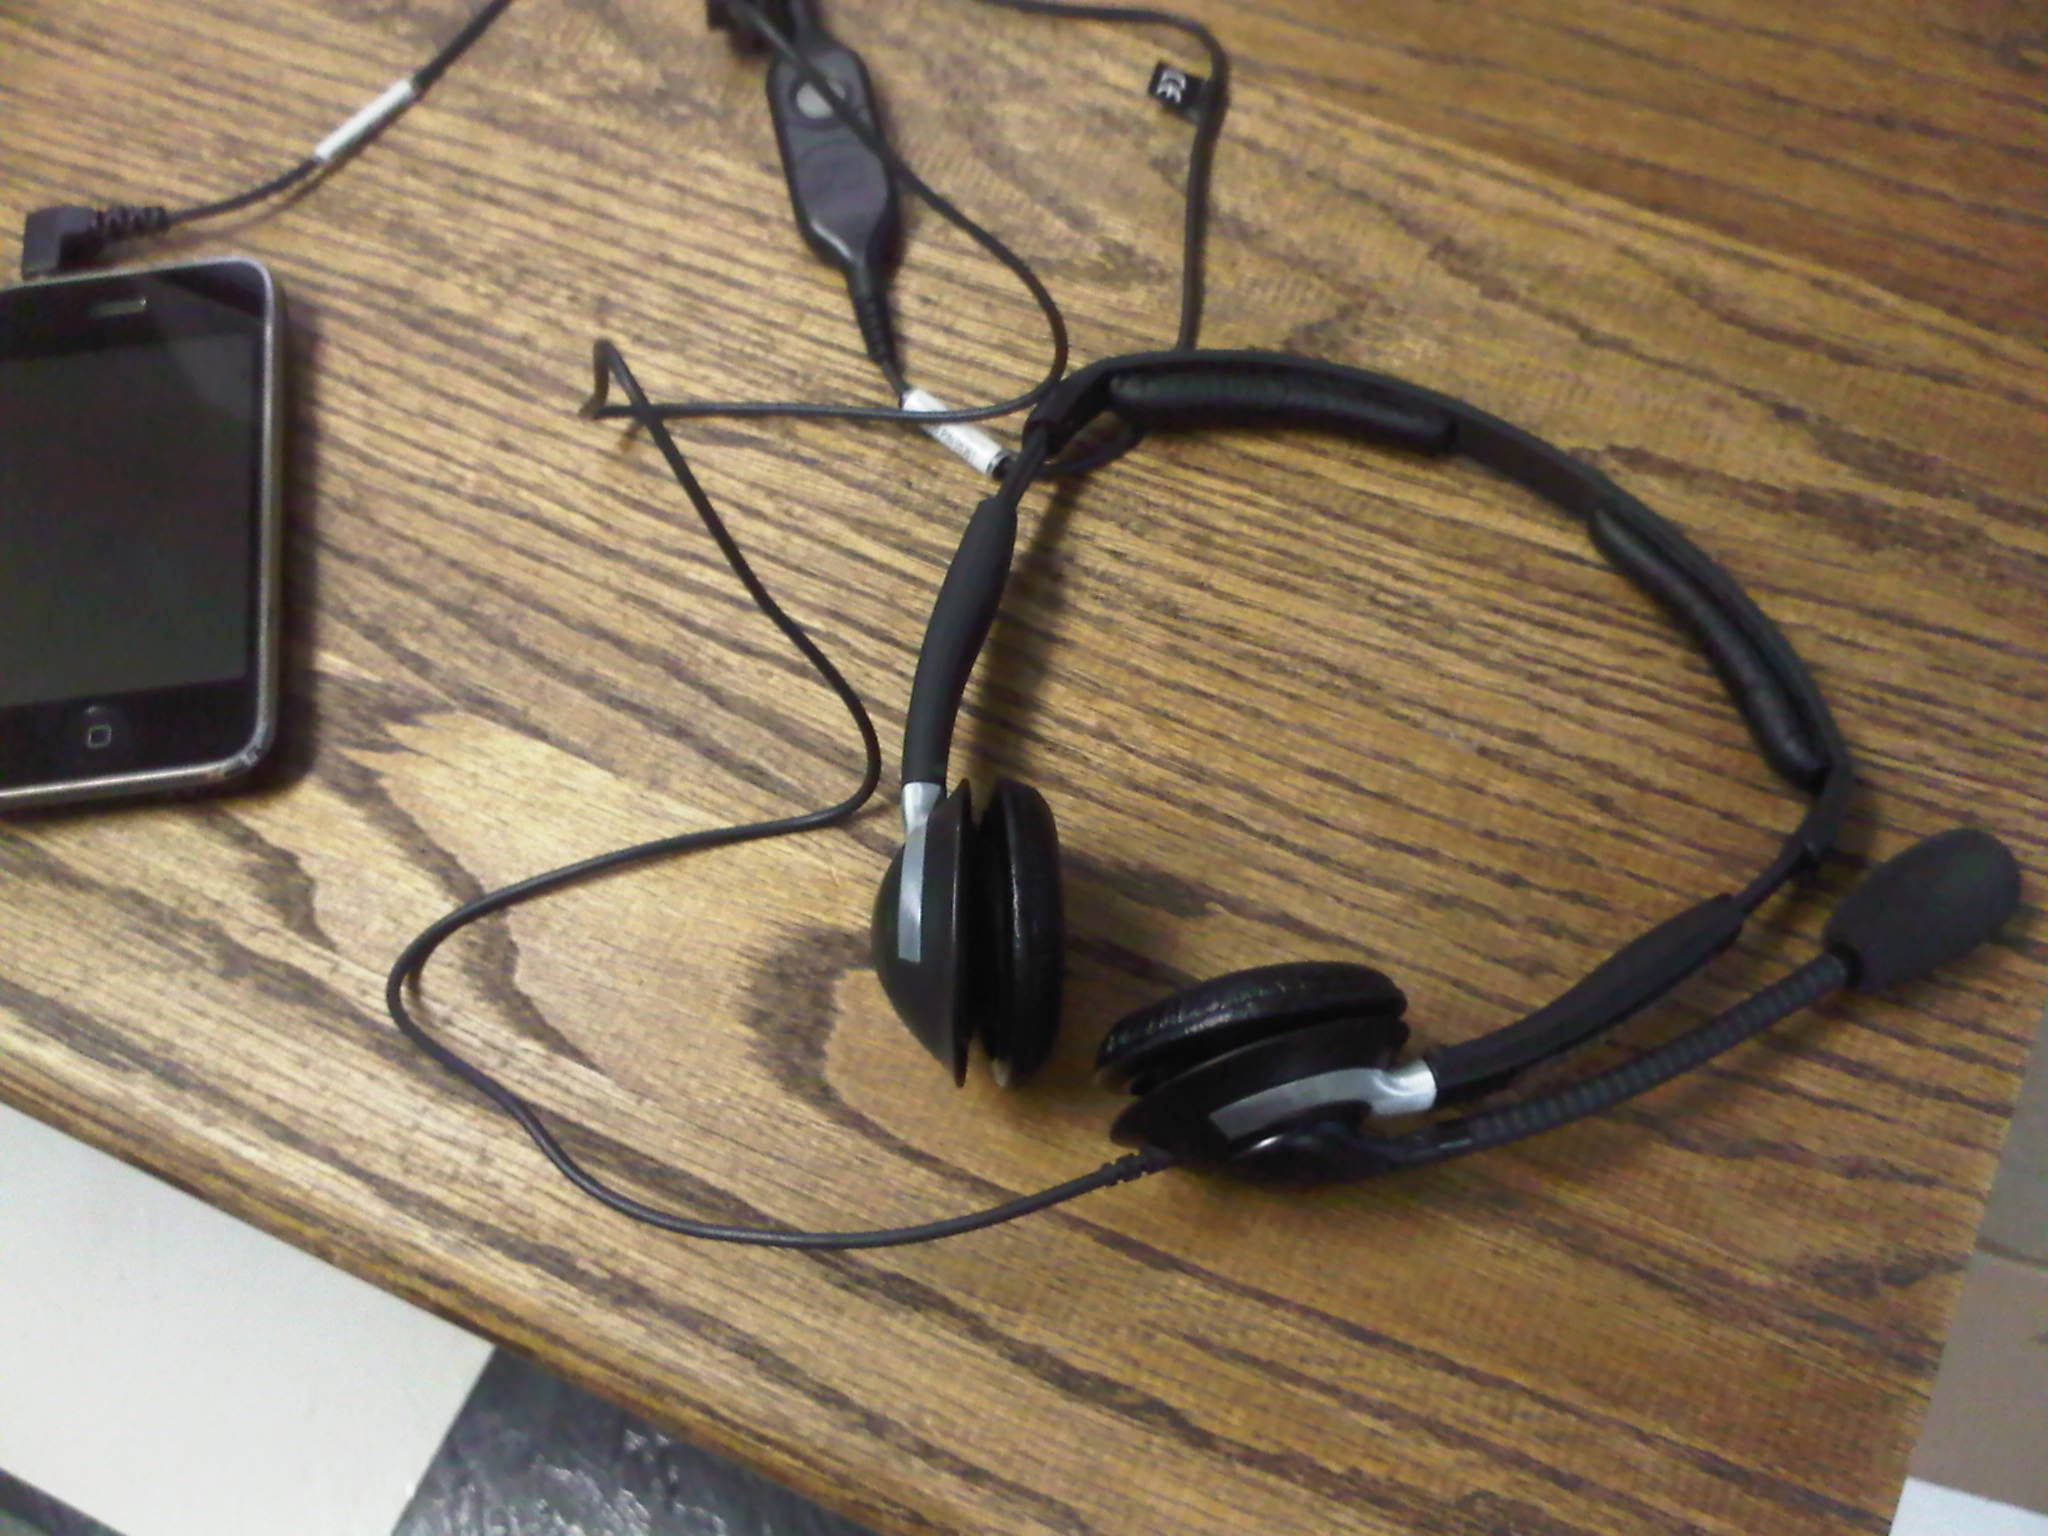 using standard telephone wired headset plantronics or similar img00014 20100506 0703 jpg